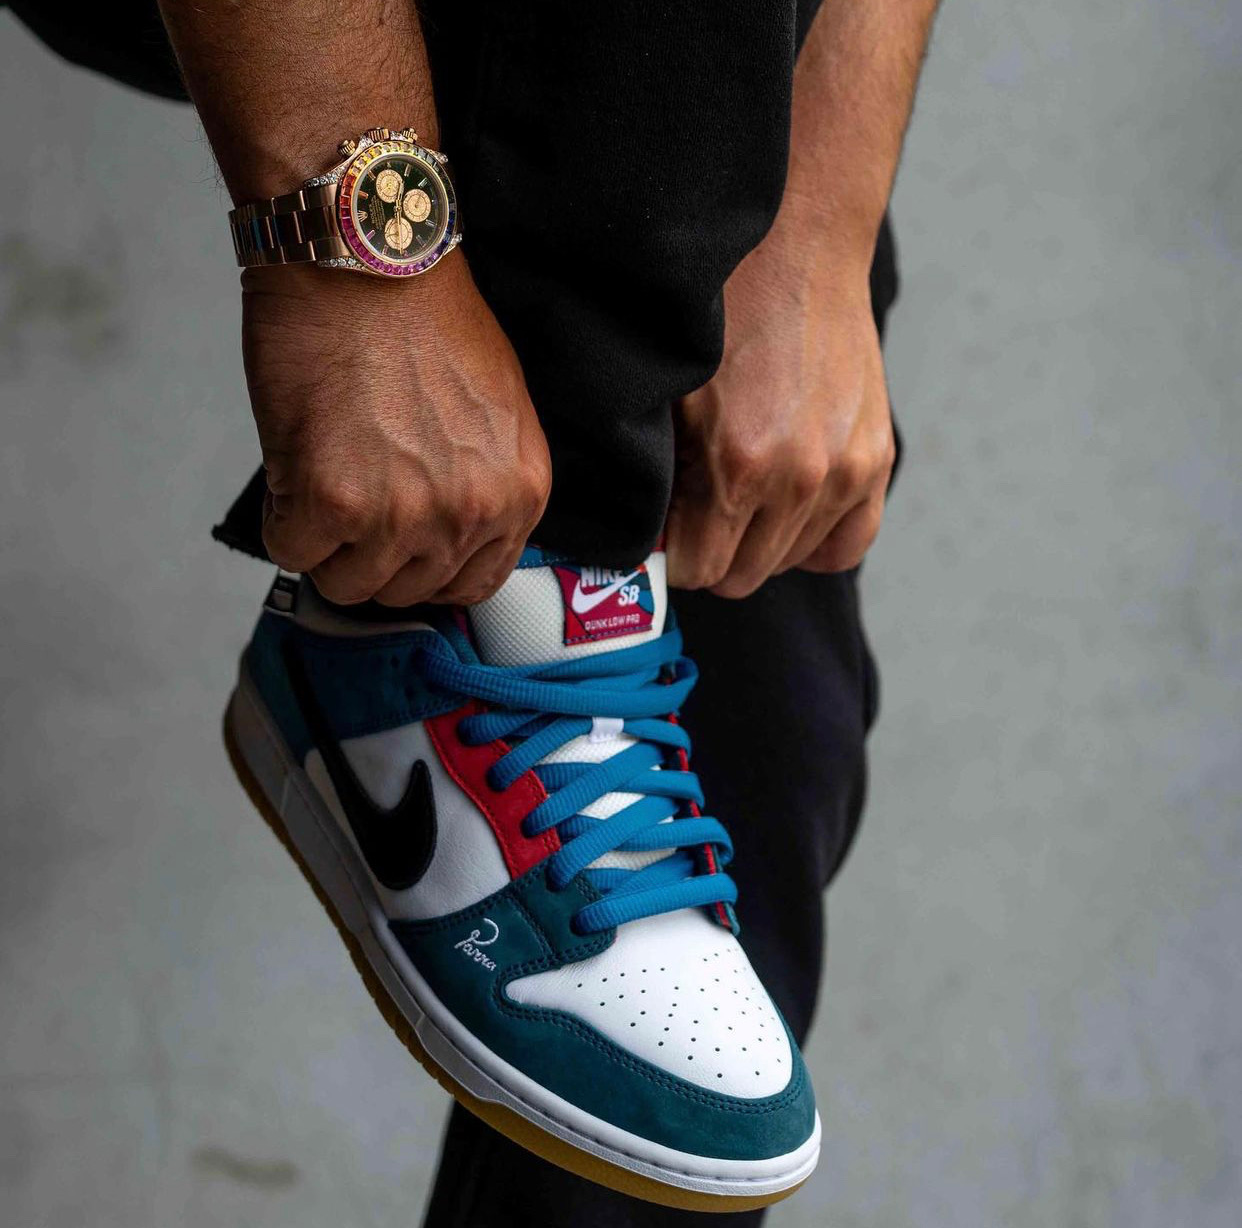 Nike Piet Parra SB Dunk Friends and Family